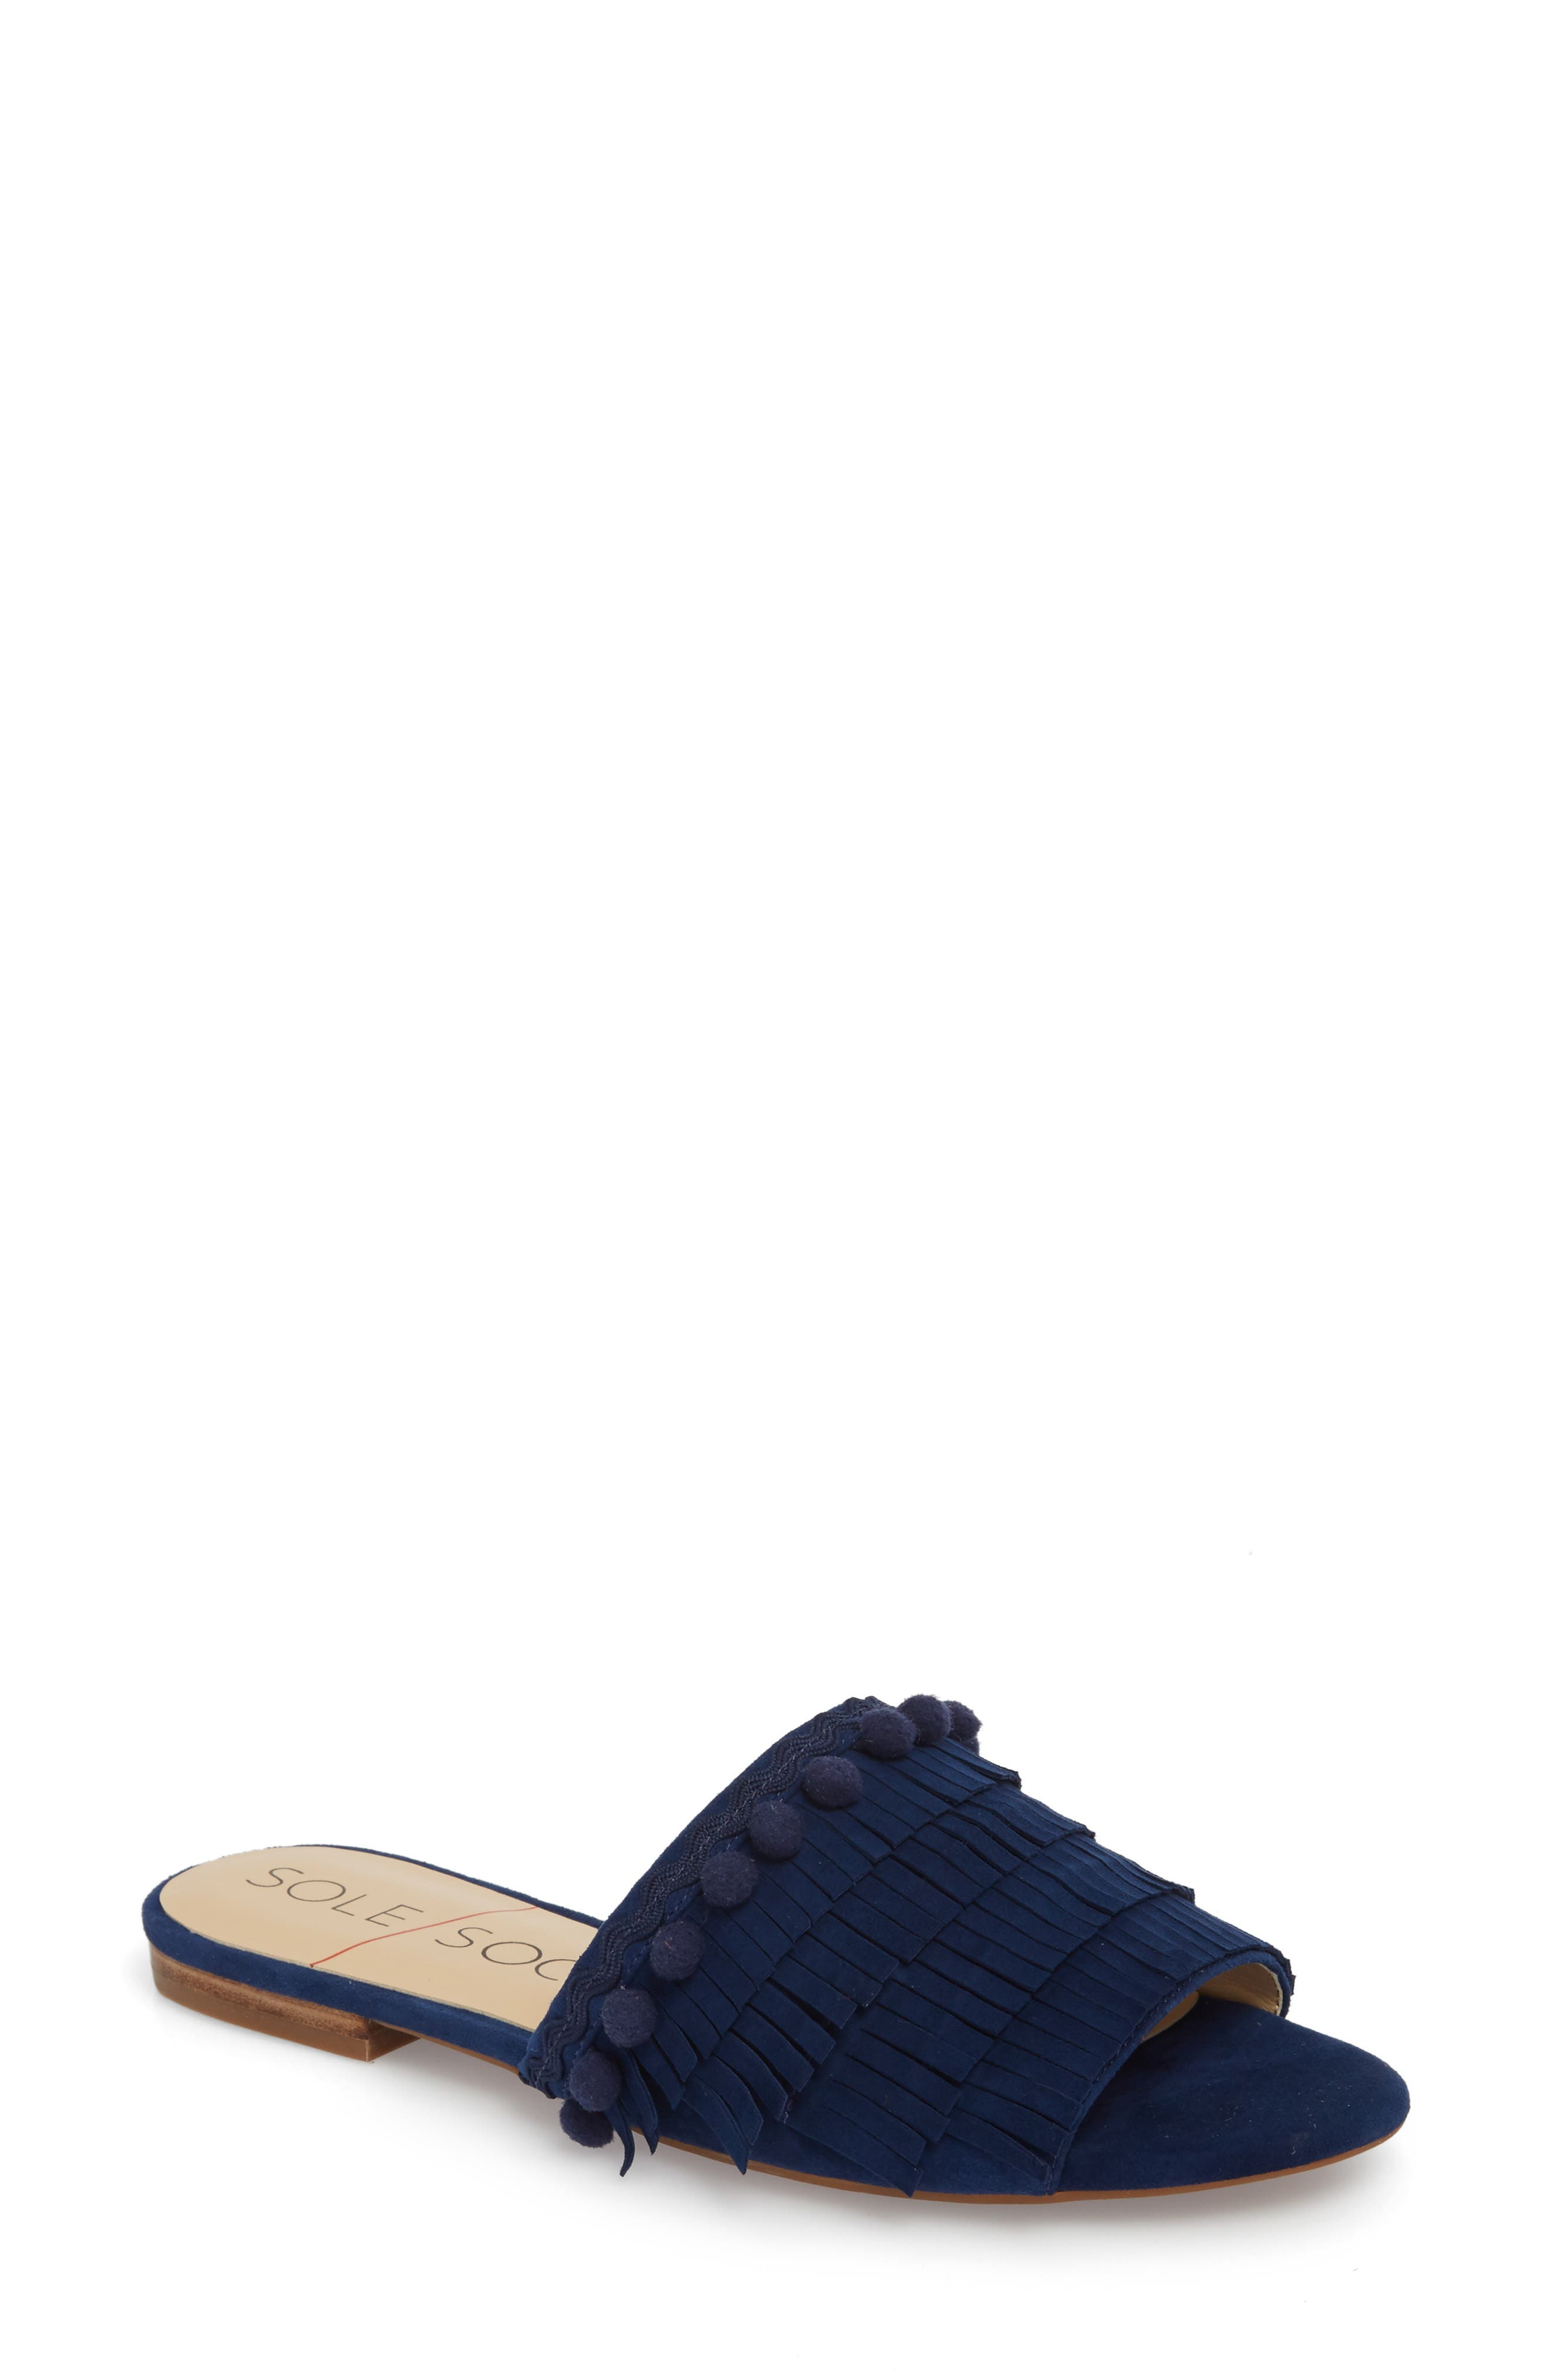 Malina Mule,                             Main thumbnail 1, color,                             NAVY SUEDE